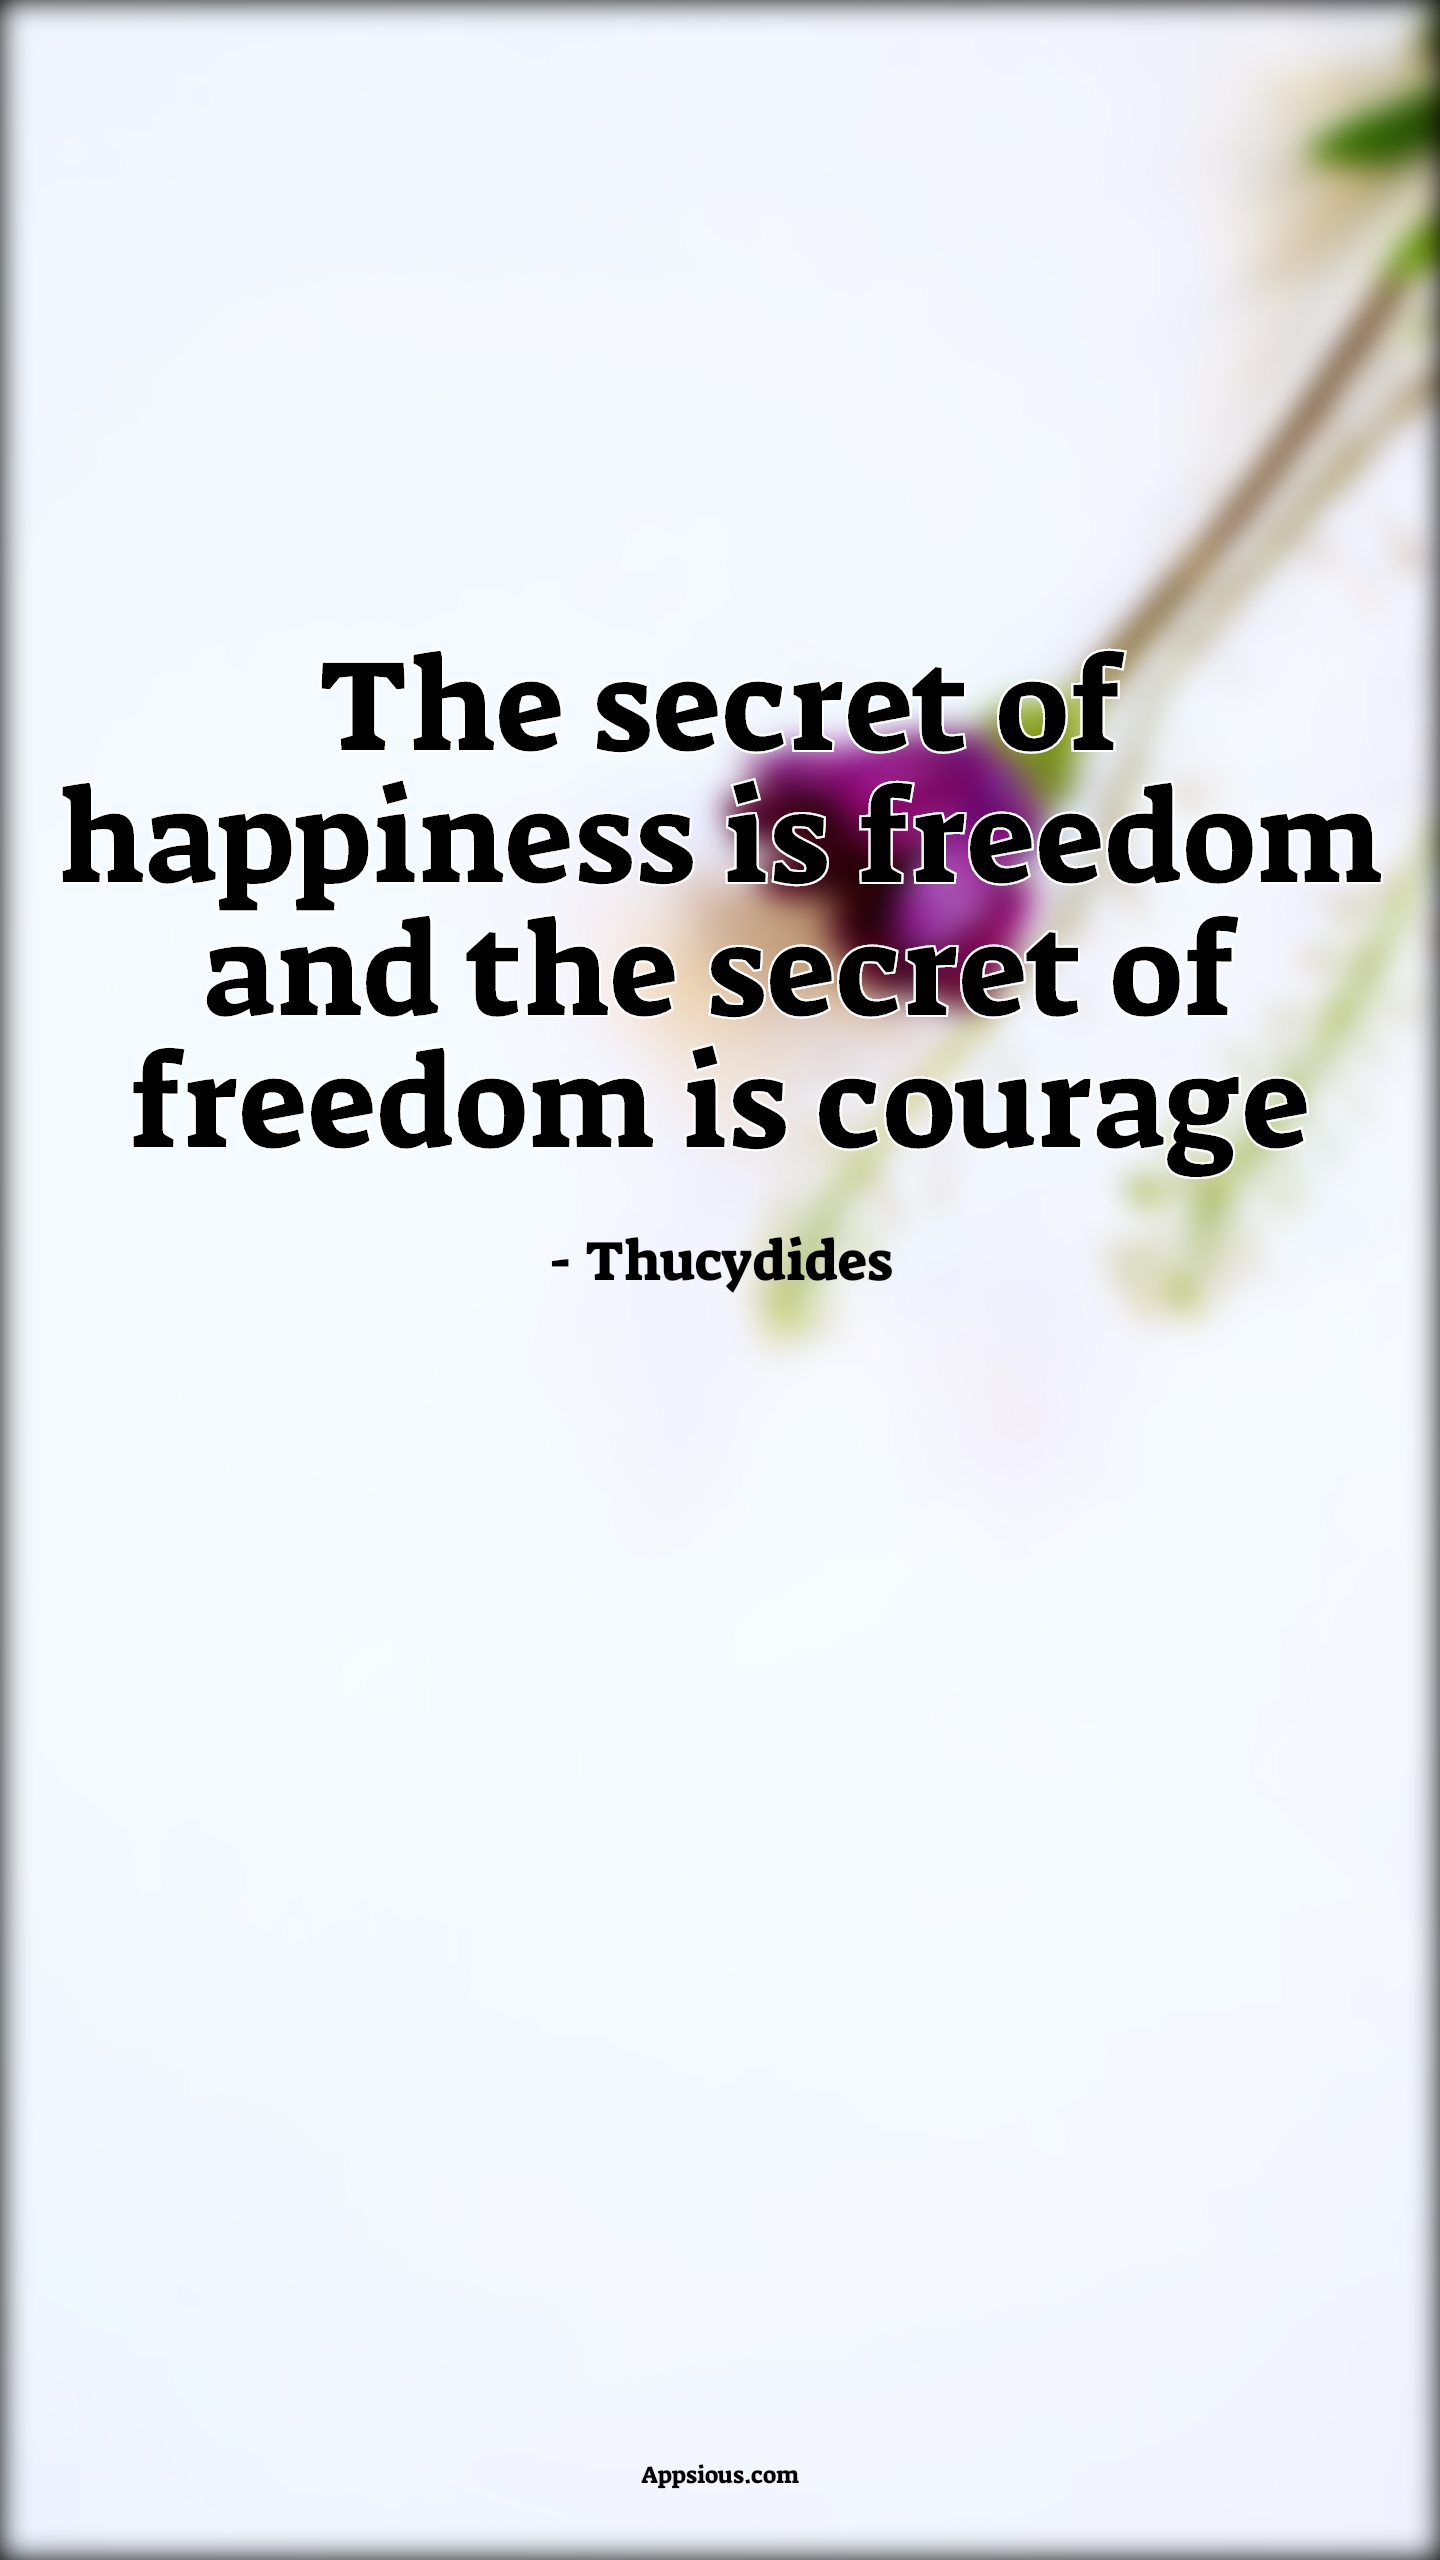 The secret of happiness is freedom and the secret of freedom is courage